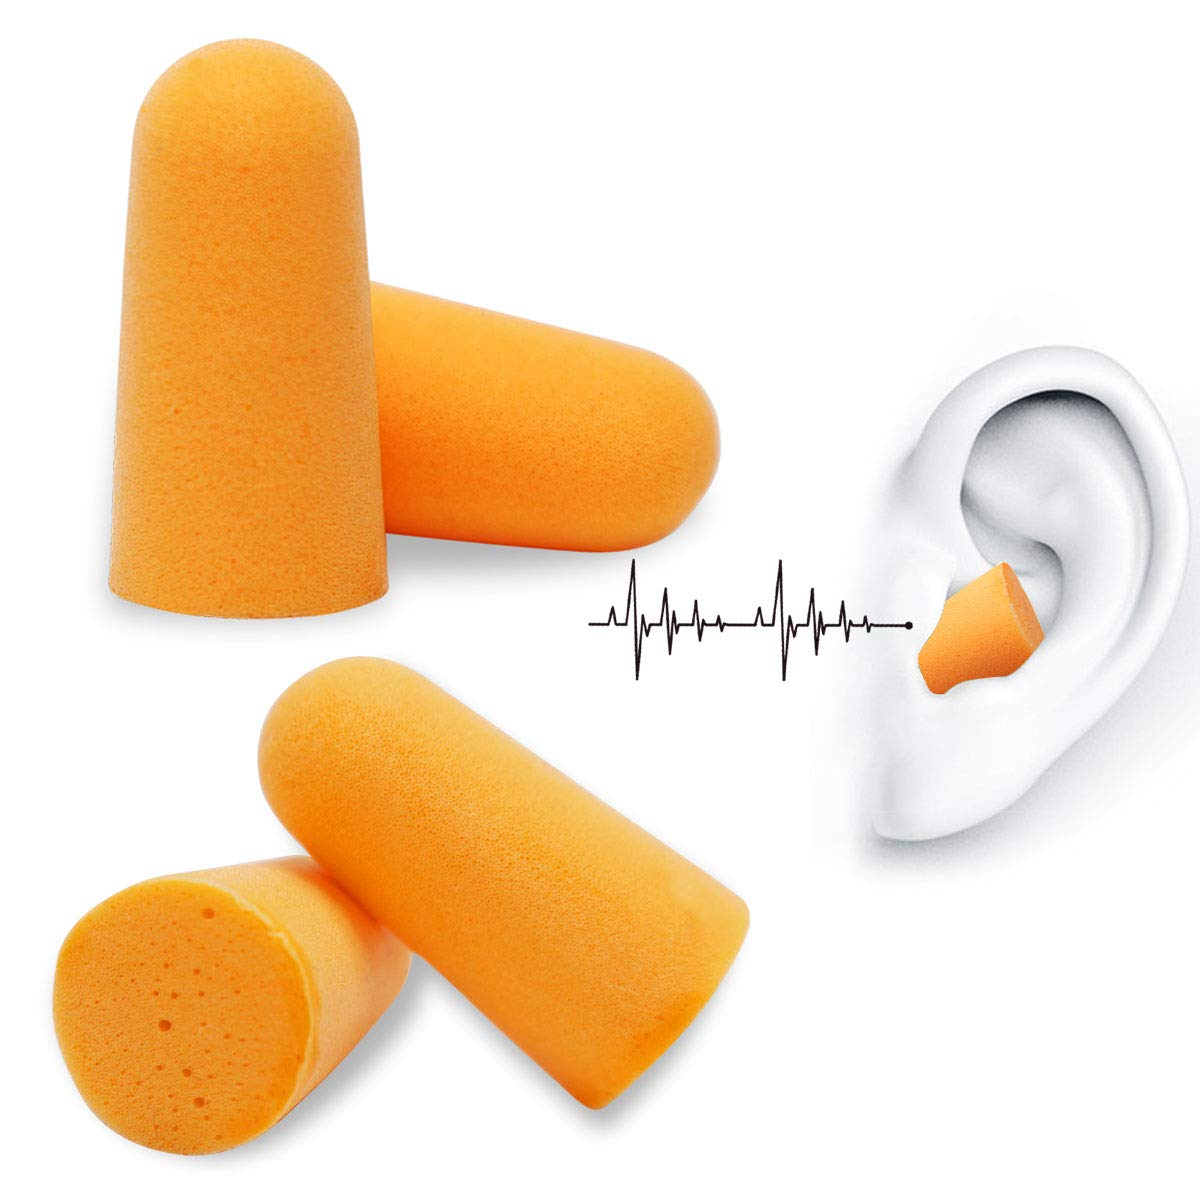 OUSPOTS Sleep Noise Cancelling Ear Plugs - Block Loud Annoying Noises Foam Earplug for Hearing Protection Noise Reduction Hunting Season Sleeping, Snoring, Working, Shooting, Travel, Concert